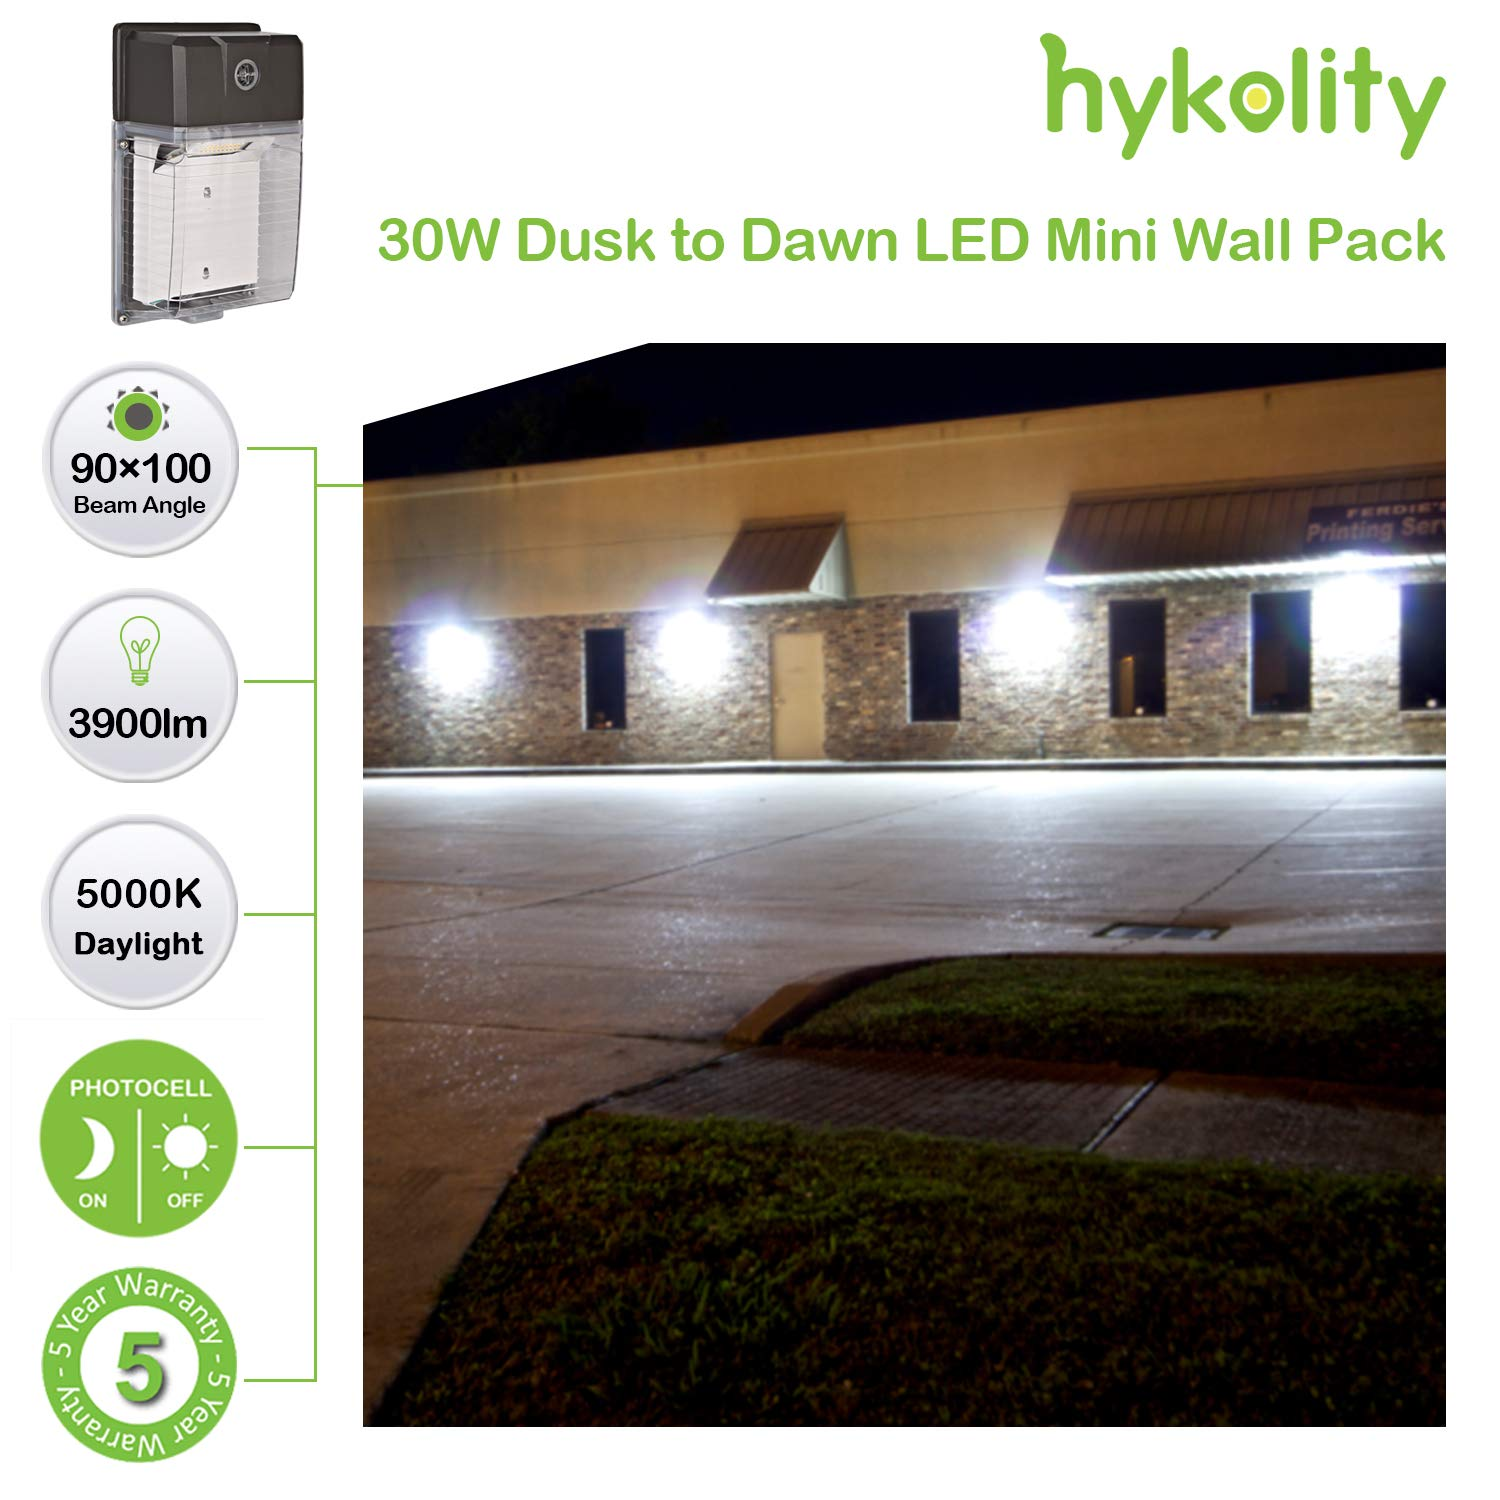 3900lm 5000k DLC Complied-2pack 150W HPS//HID Eq. Hykolity 30W LED Mini Wall Pack Light with Photocell Dusk to Dawn Outdoor Wall Mount Light Fixture